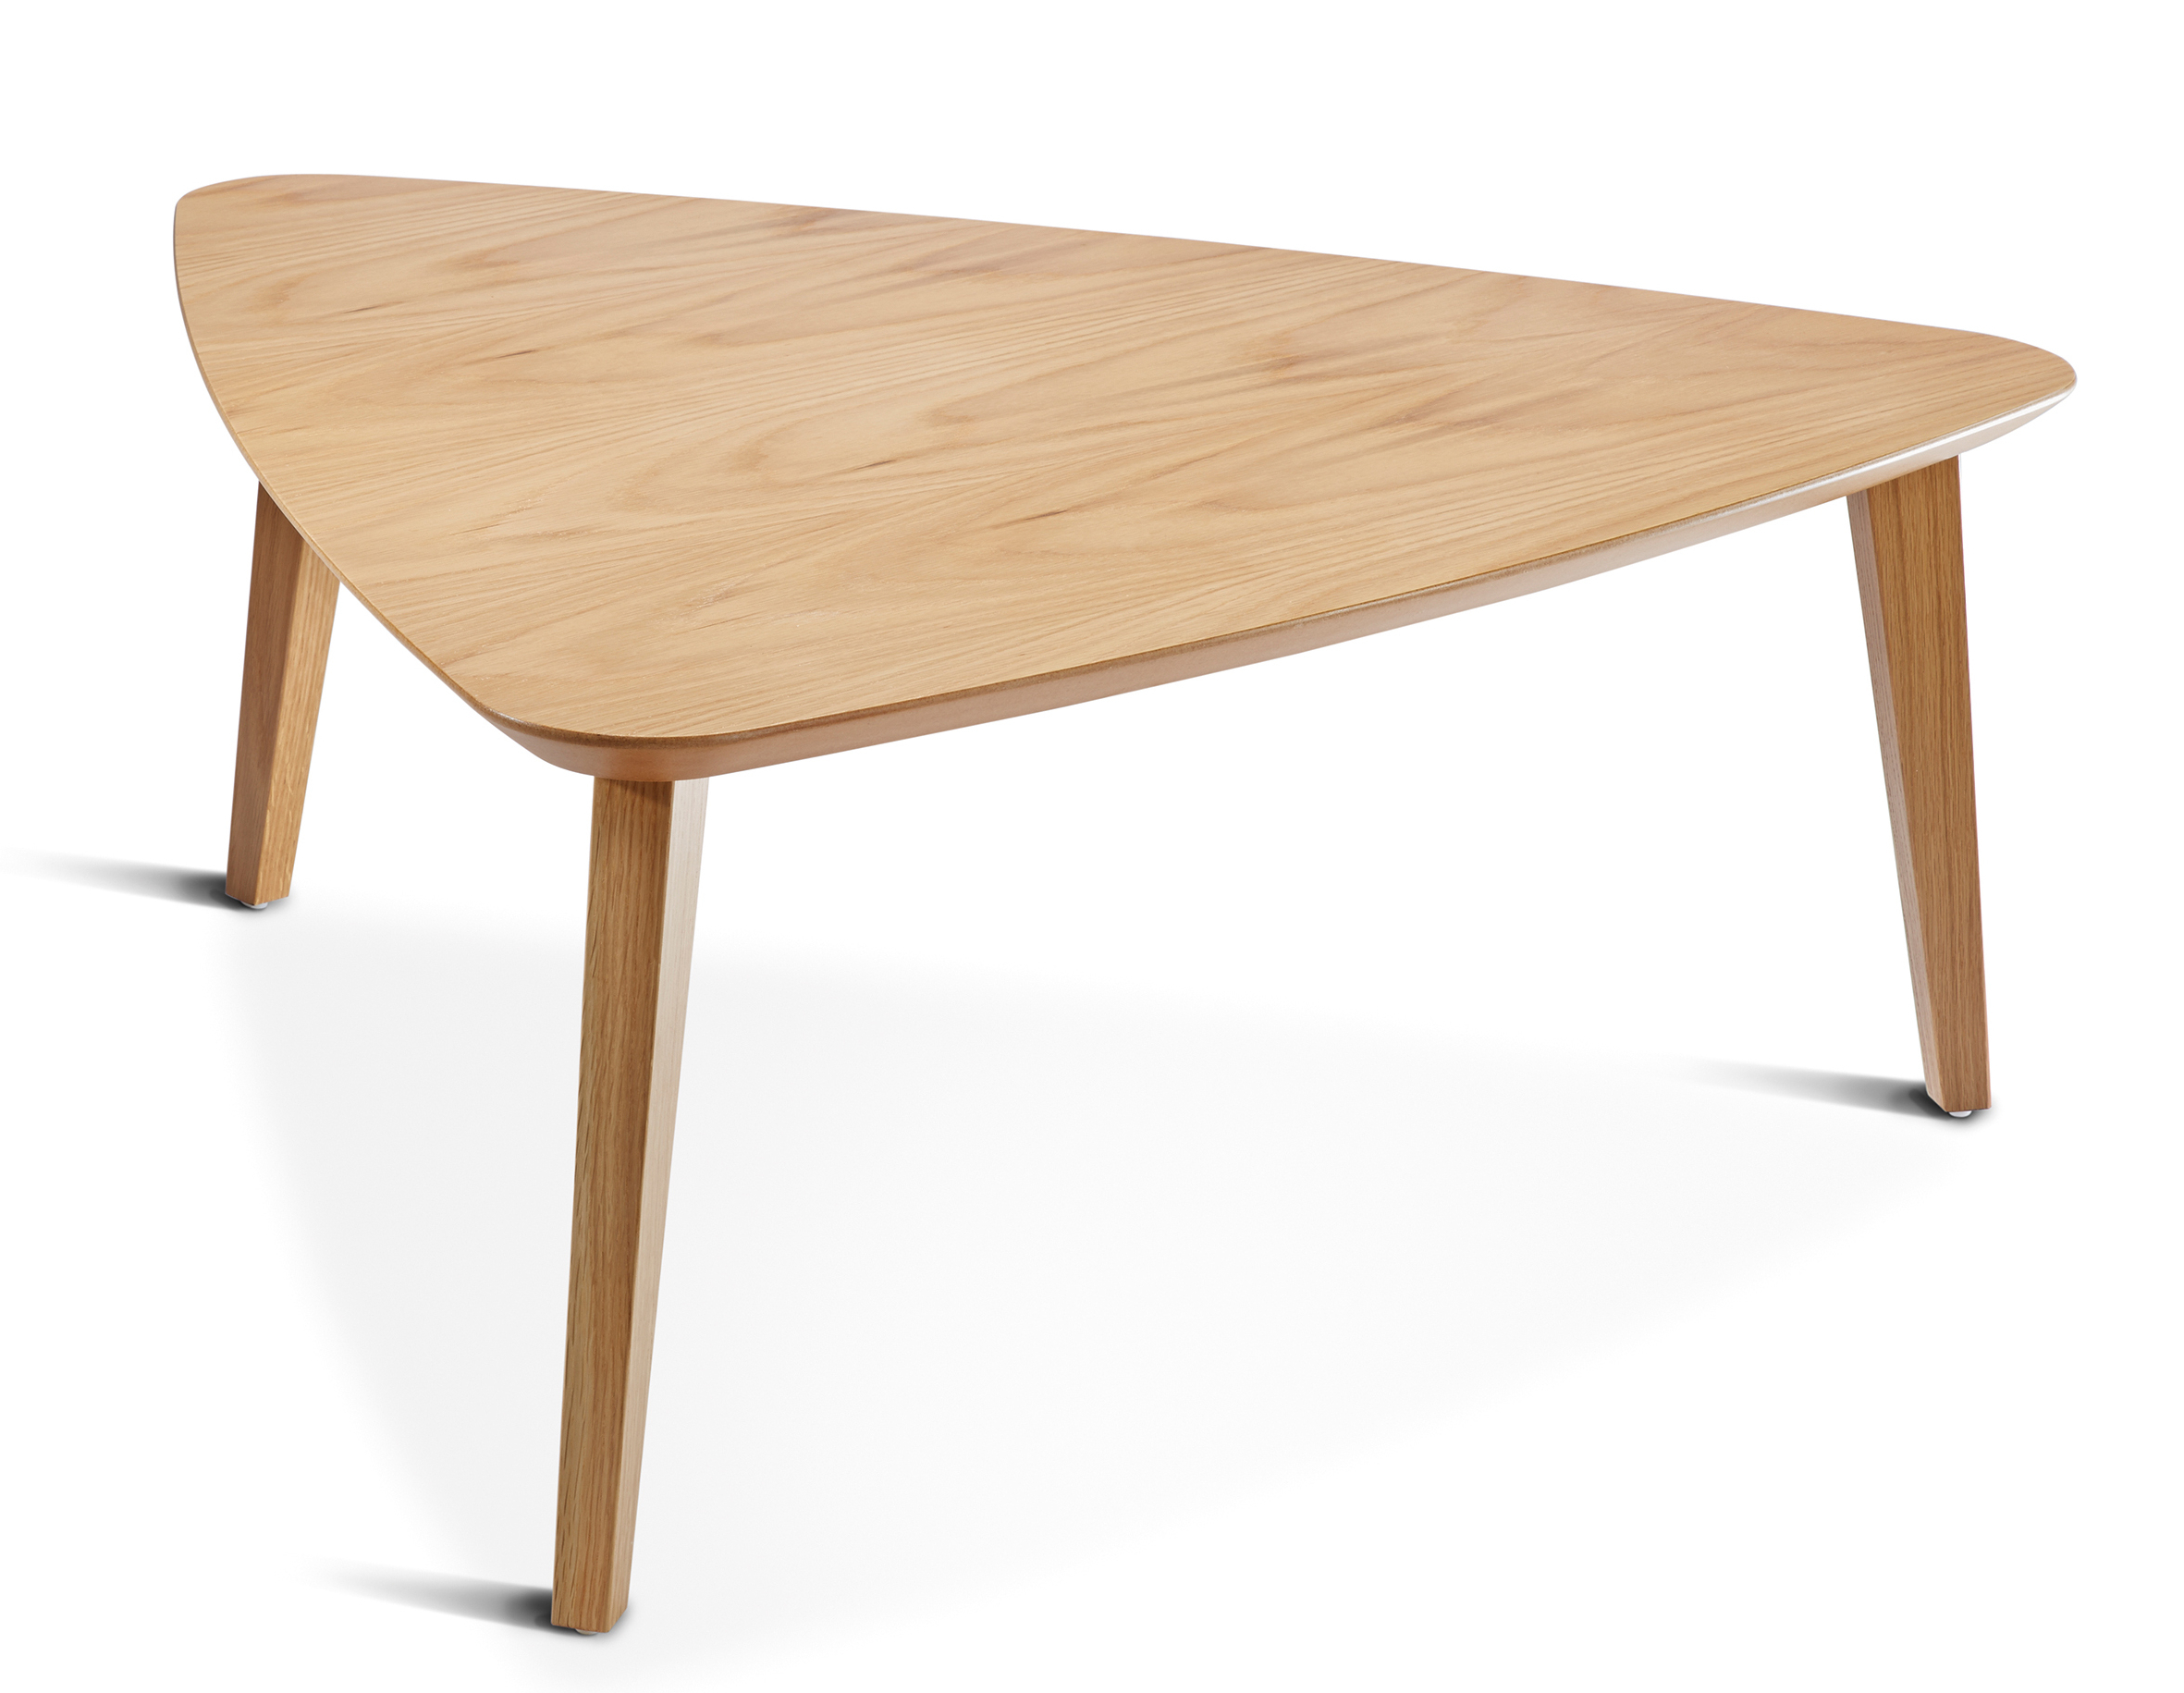 Most Recent Contemporary Curves Coffee Tables Throughout Mortimer Triangular Coffee Table – Tmoc/tri (View 9 of 20)